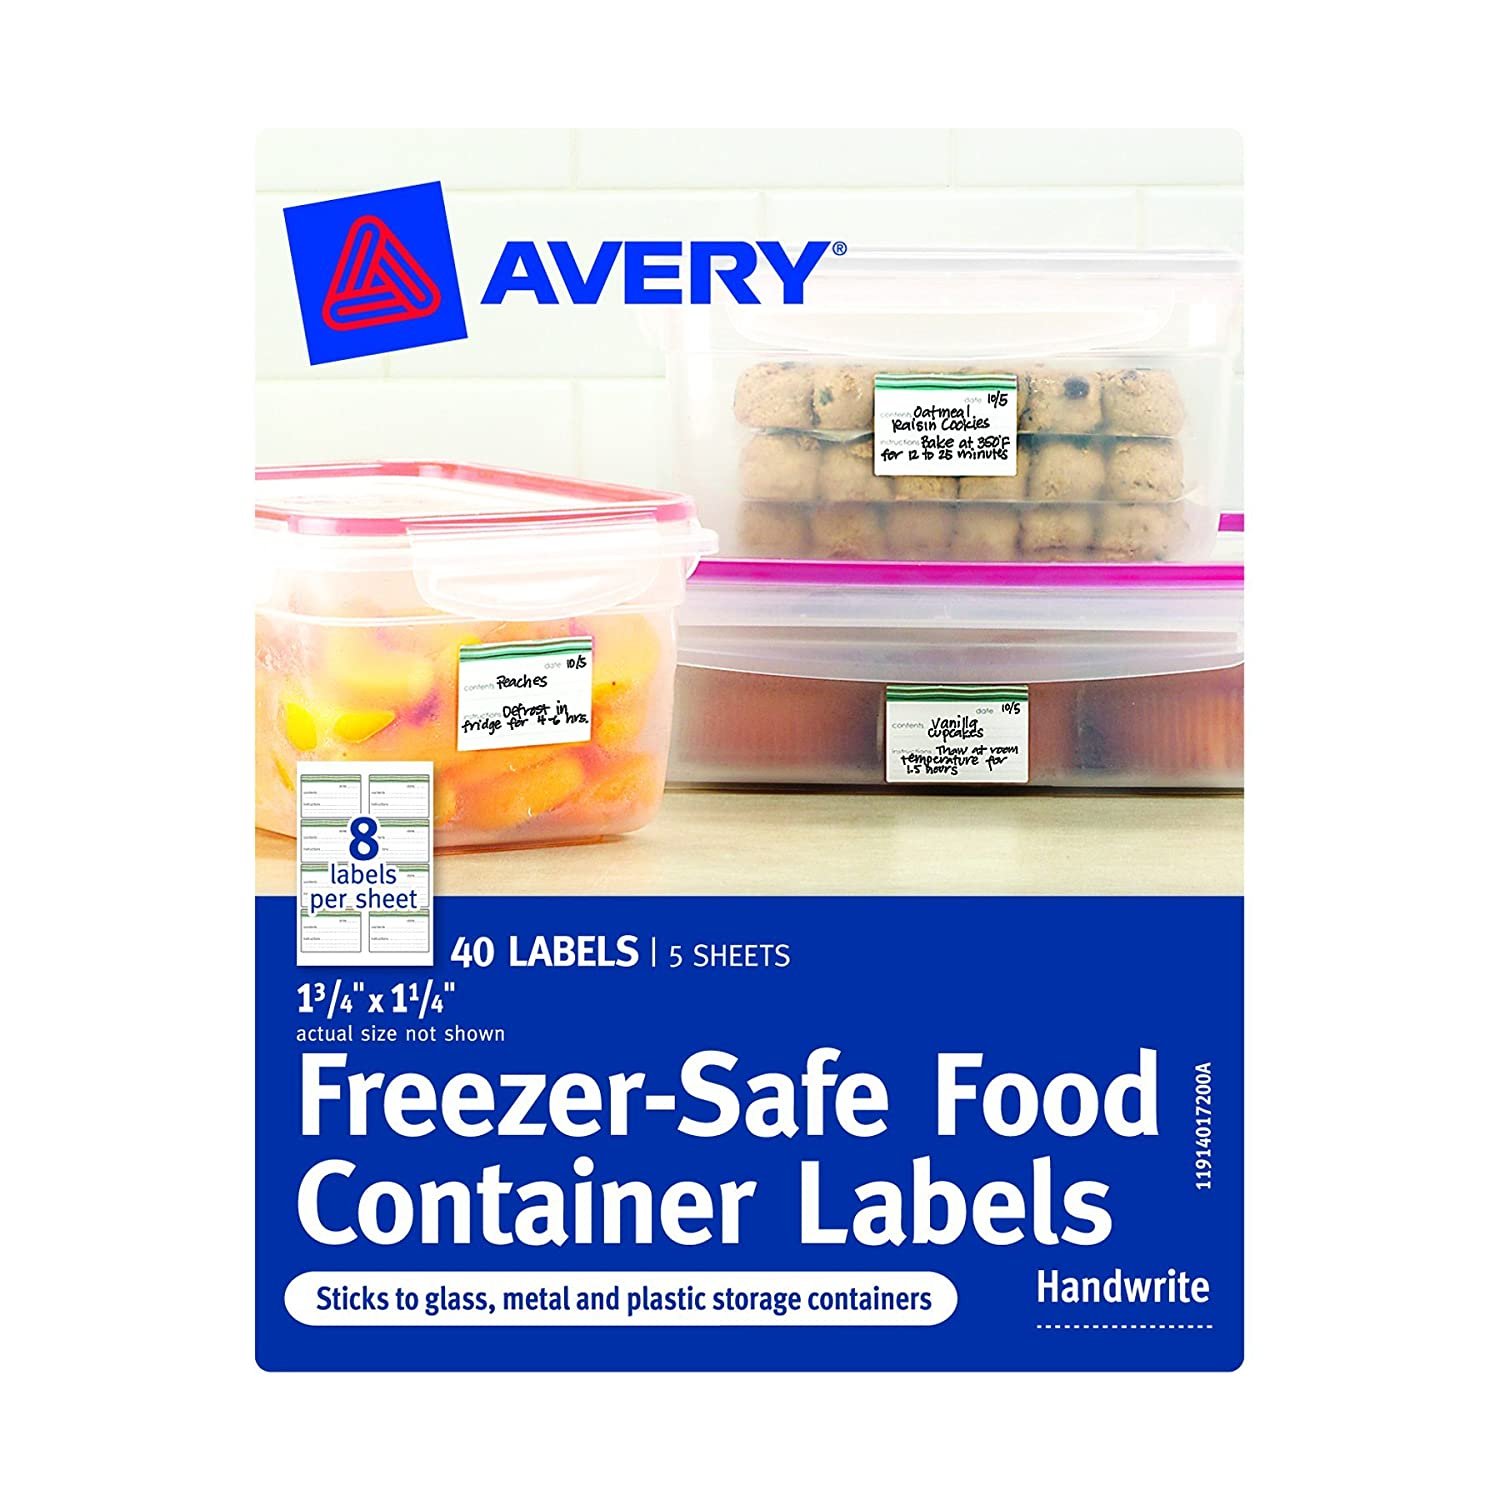 Avery Freezer-Safe Food Container Labels, 1.25 x 1.75-Inches, Pack of 40 (40172)